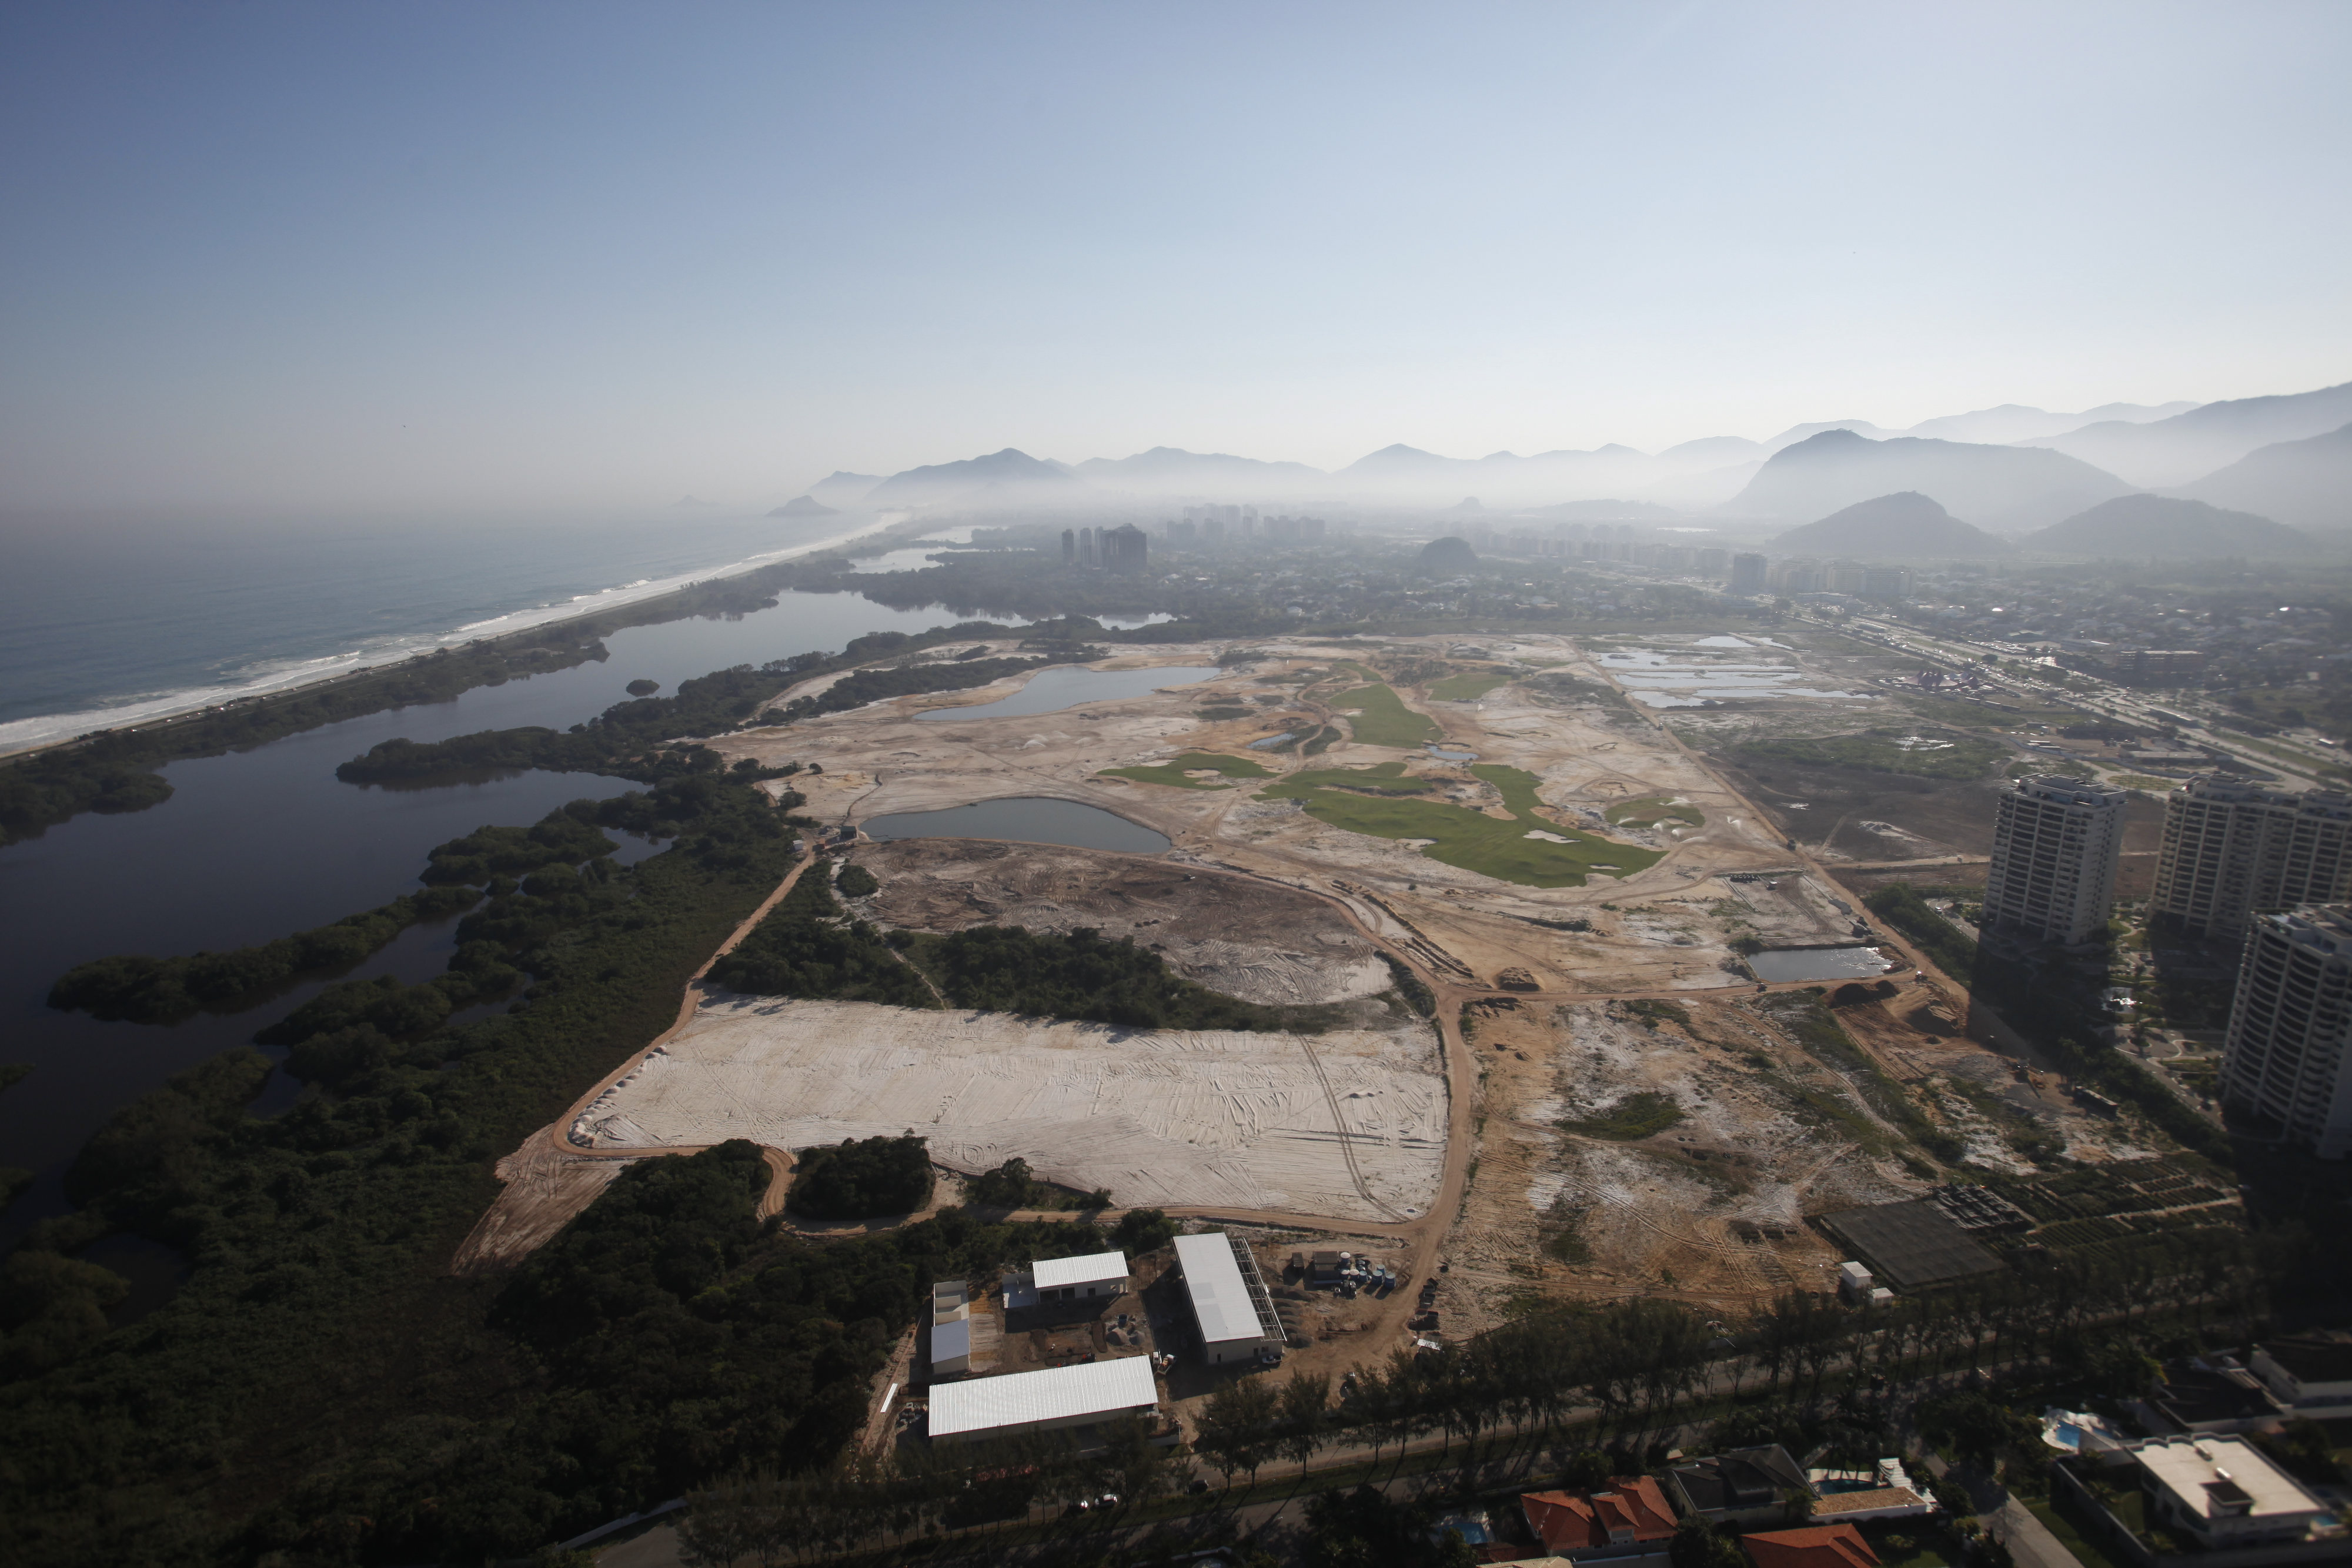 August 2014: An aerial view of Olympic golf course under construction in Rio de Janeiro.